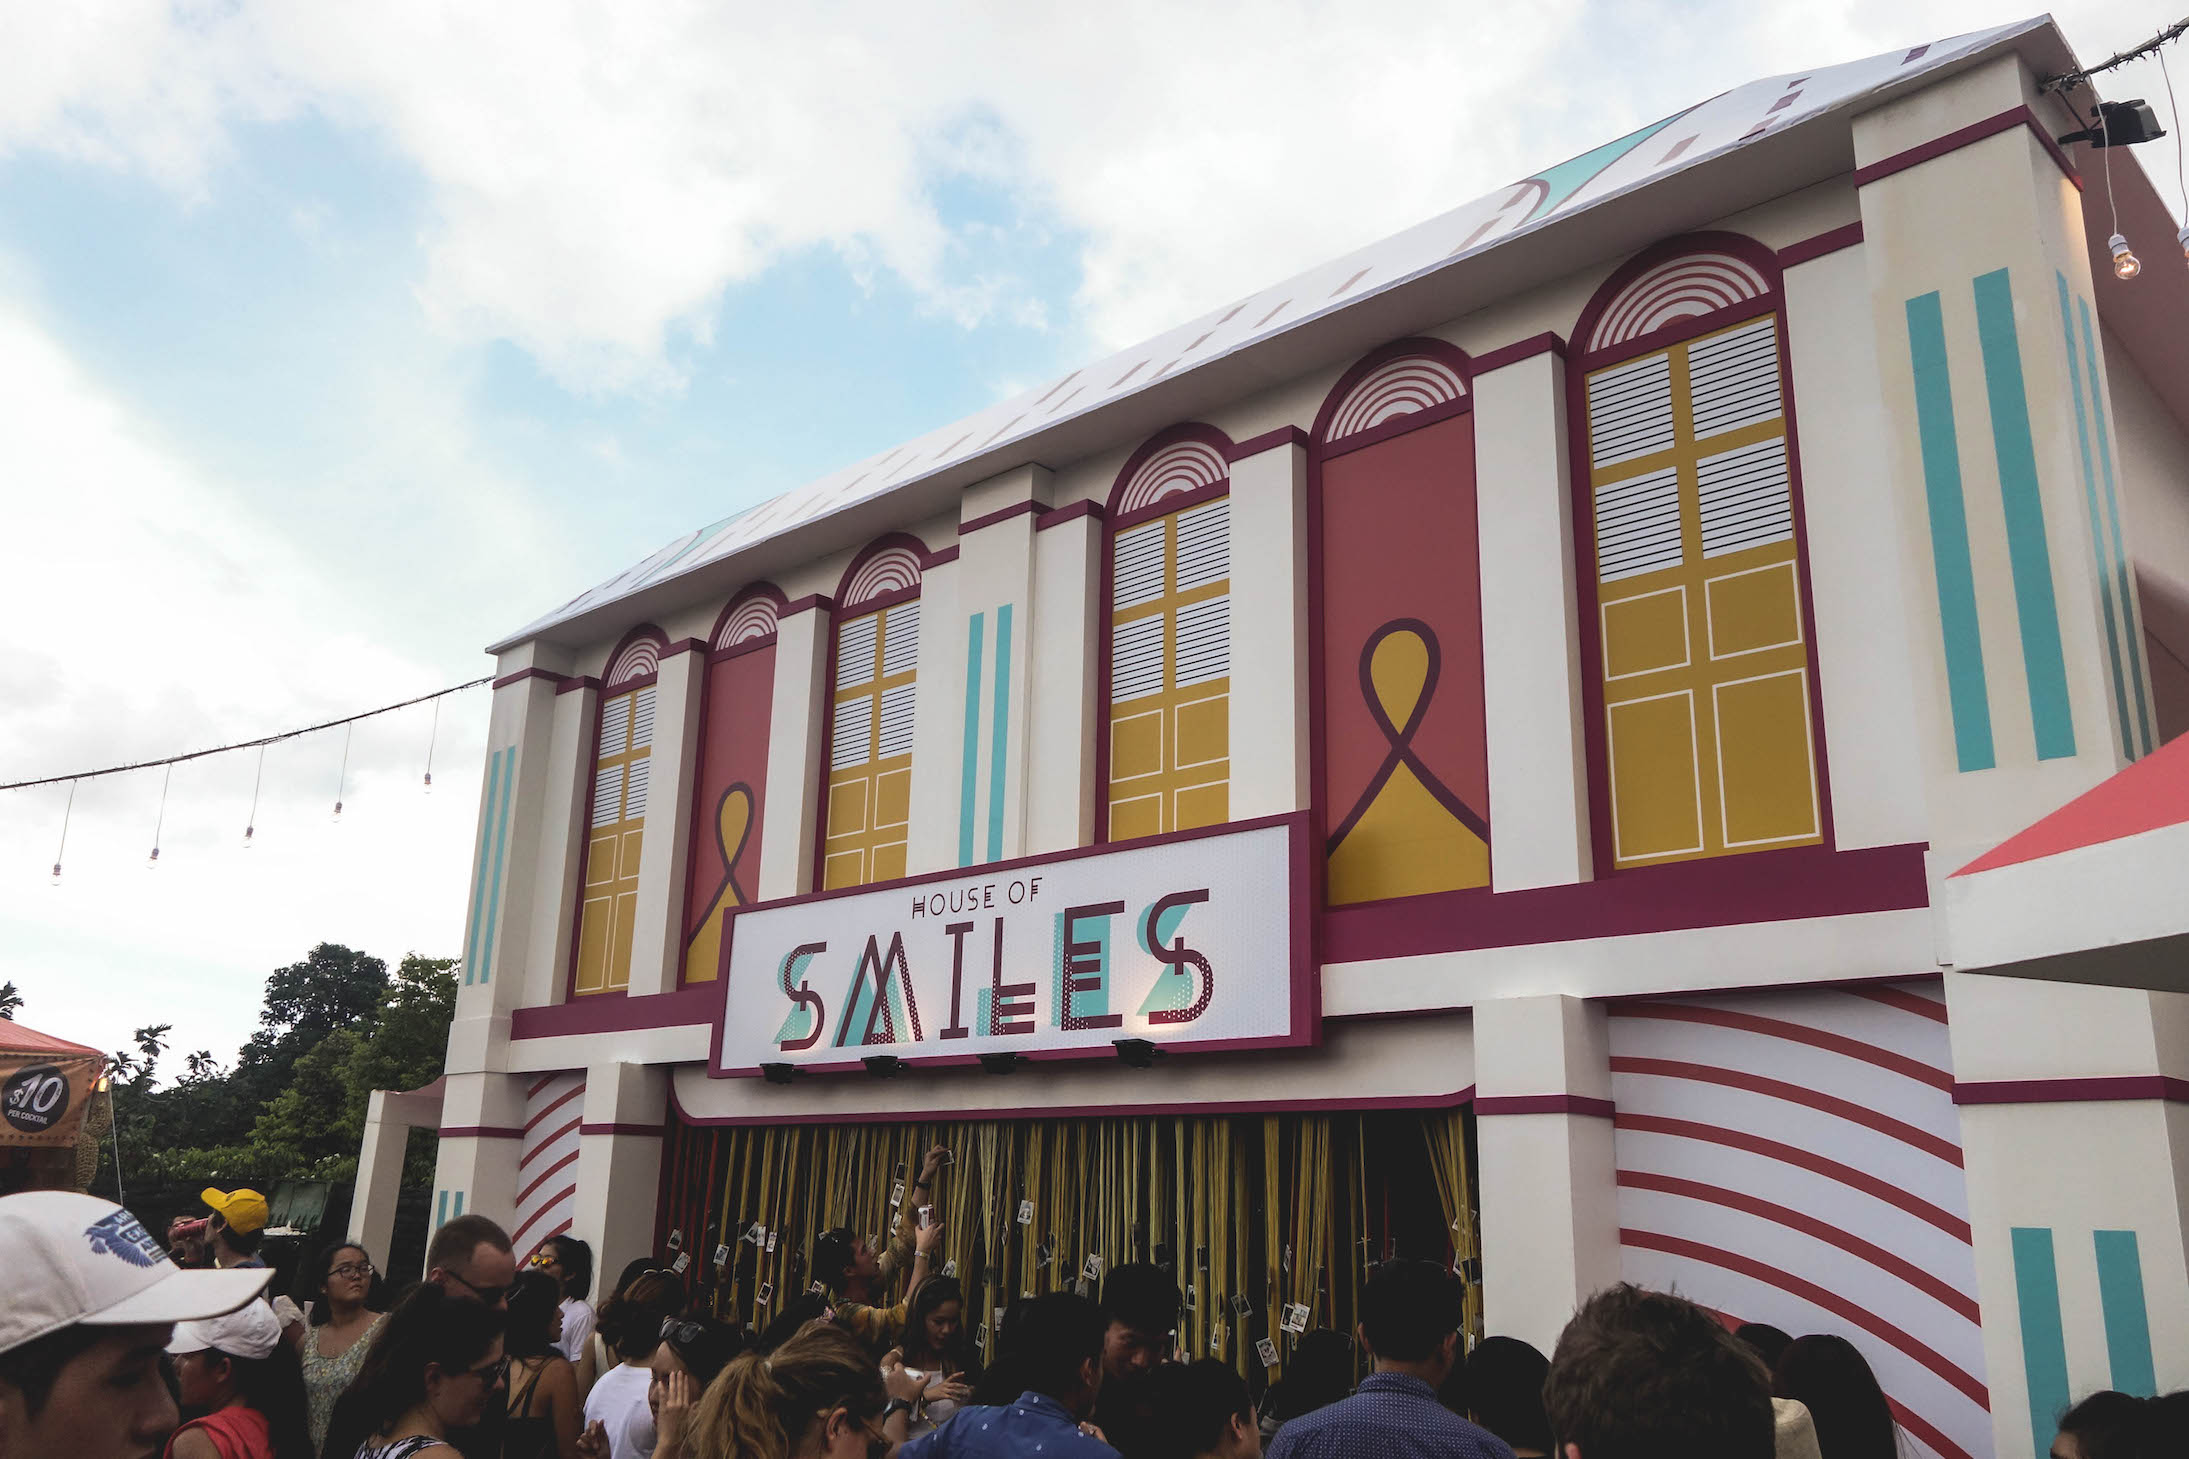 AirBnB's House of Smiles